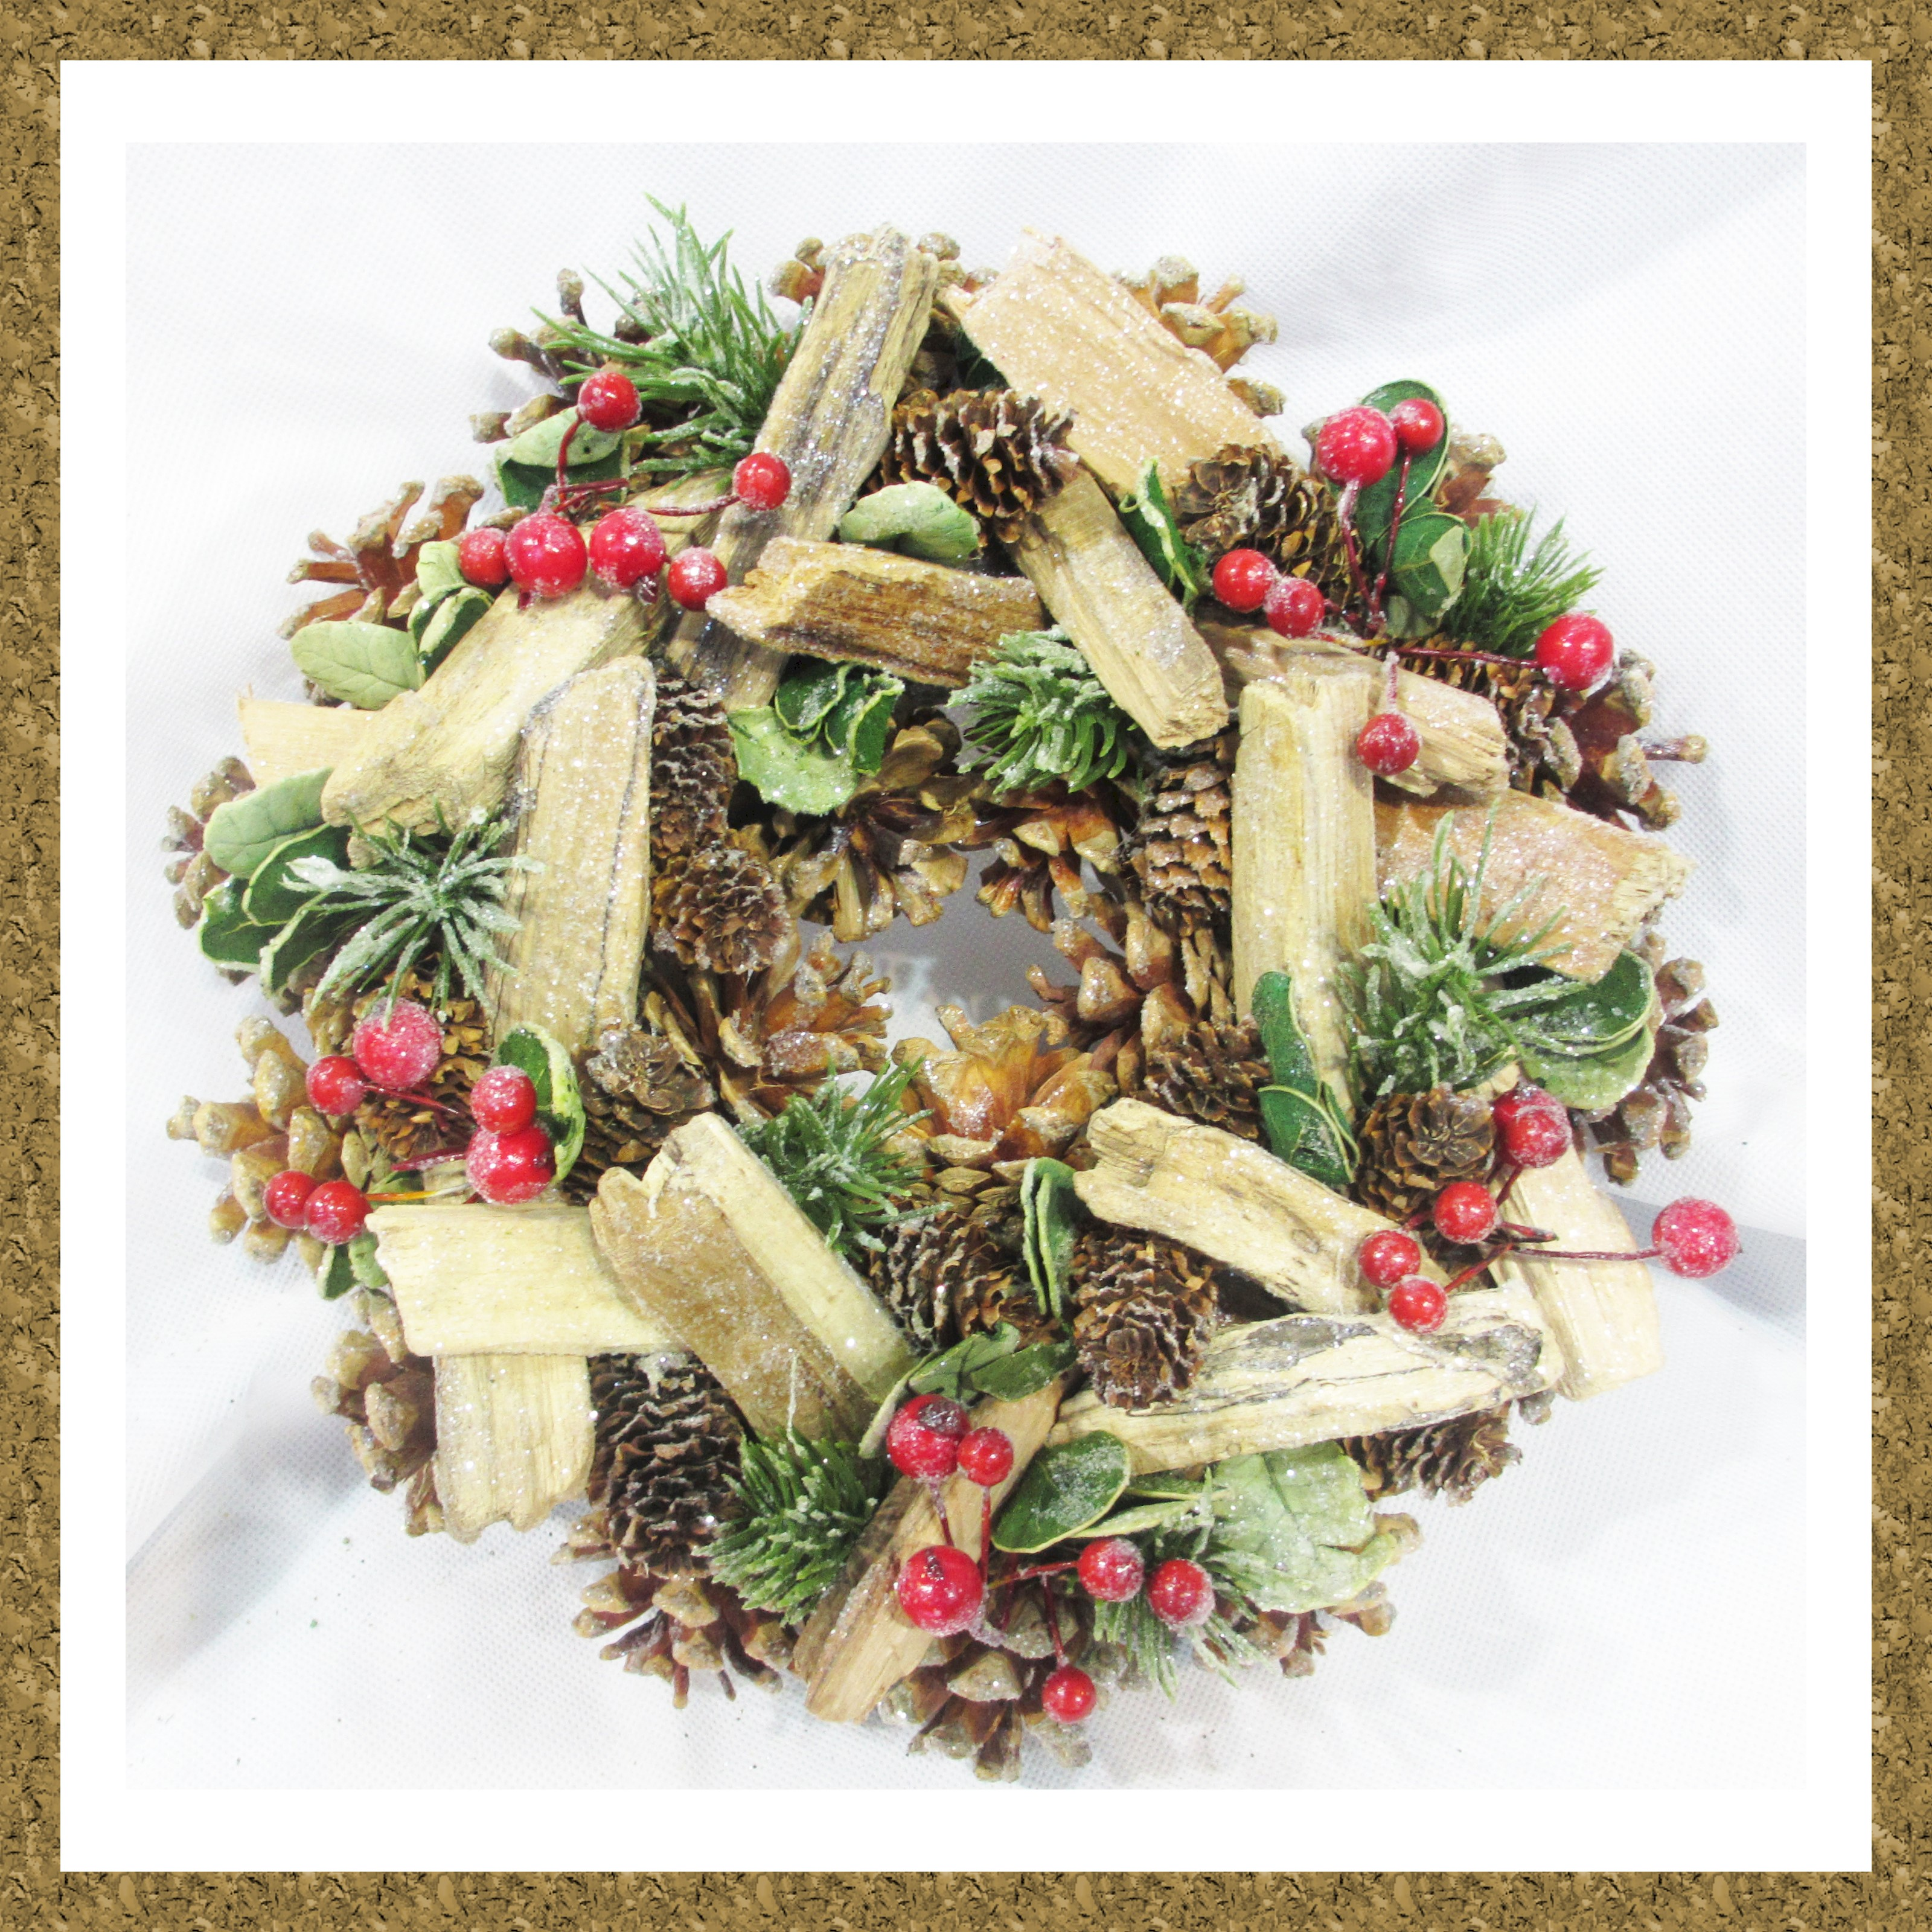 WREATH 27cm MIXED NAT. CONE/BERRY/TWIG/FIR